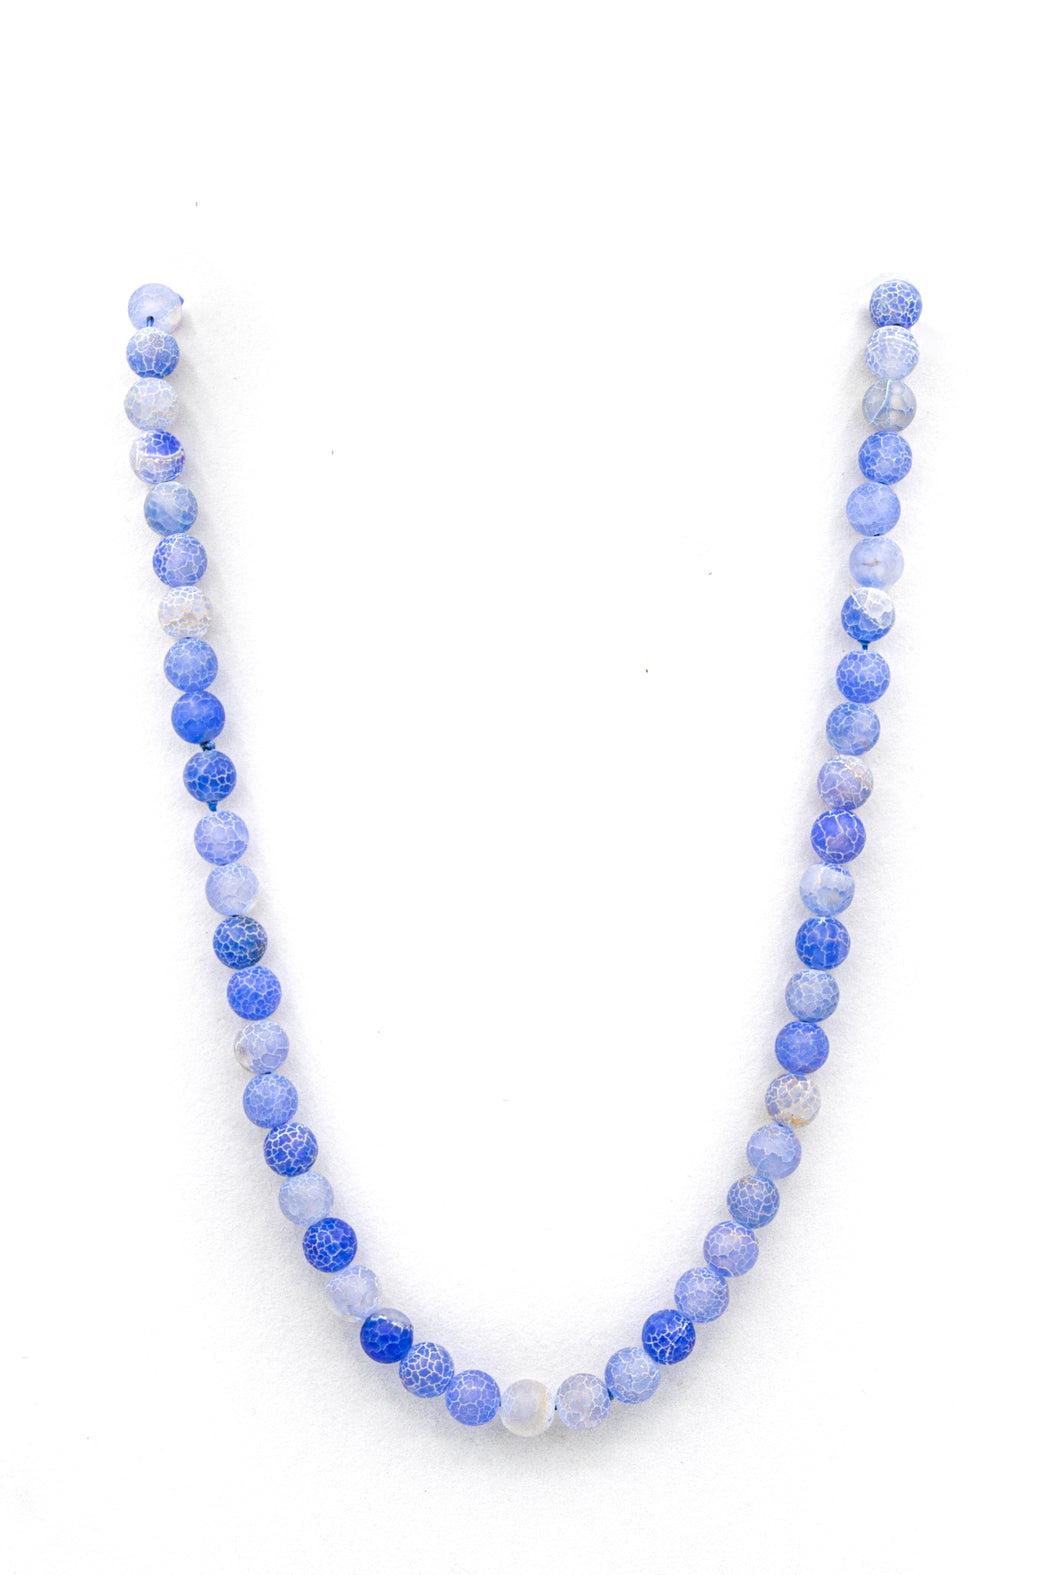 Blue dragon vein agate natural stone necklace feature full length img